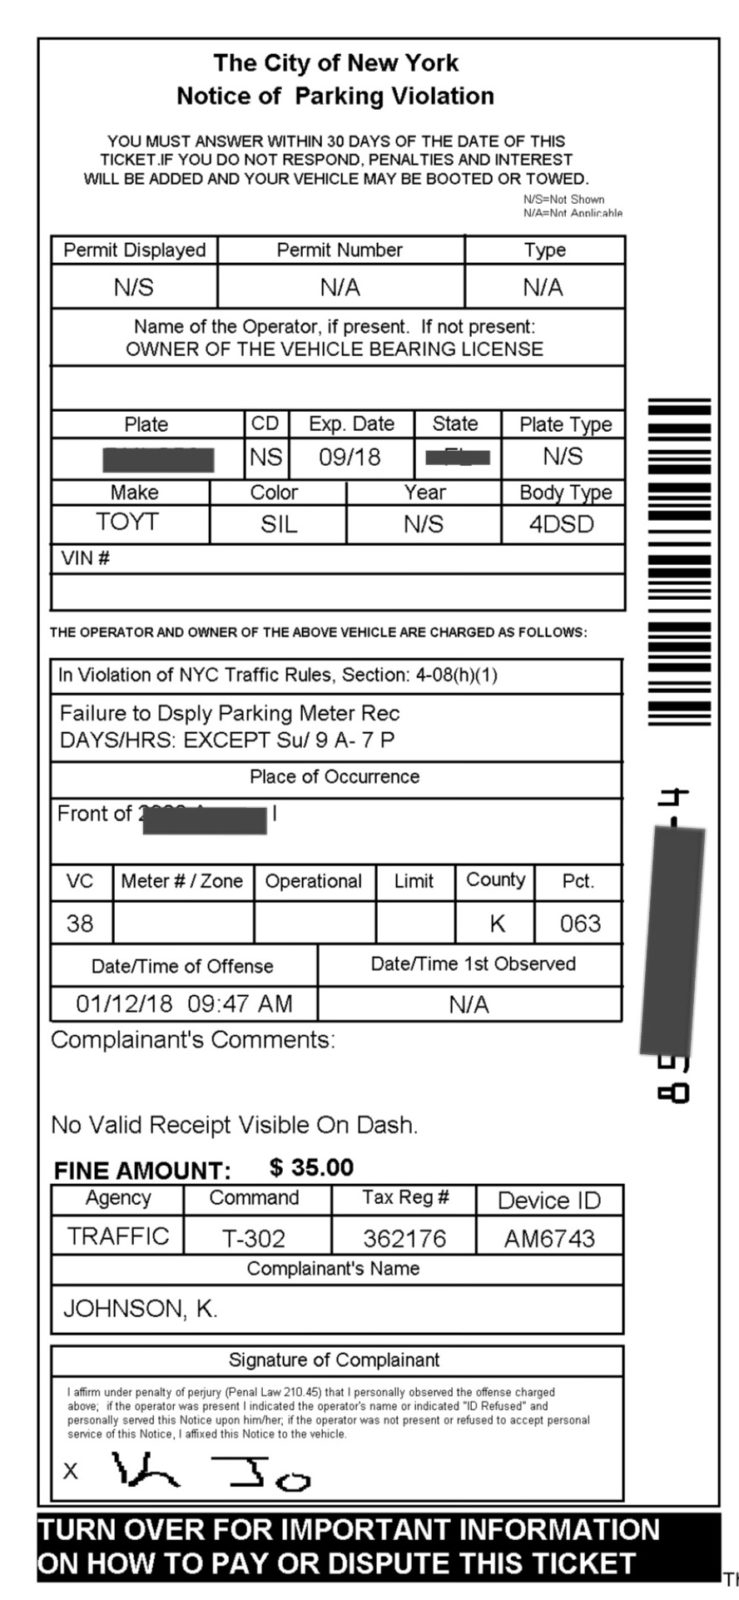 Alternate Side Suspended, Meters In Effect - Or Are They throughout Altermate Side Parking Regulation Suspension Calender For 2022